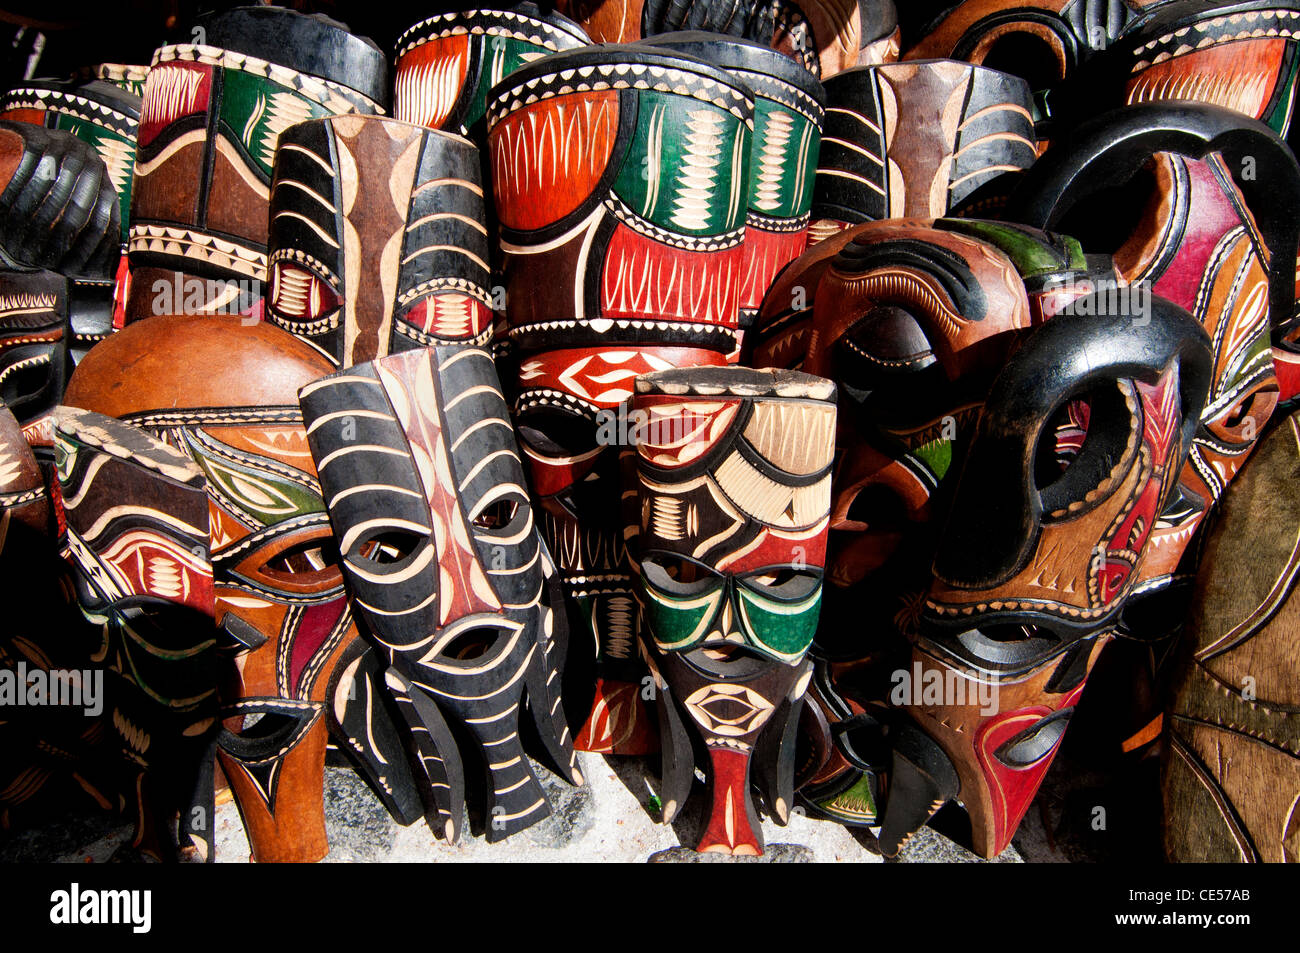 traditionelle afrikanische masken stockfoto bild 43141459 alamy. Black Bedroom Furniture Sets. Home Design Ideas